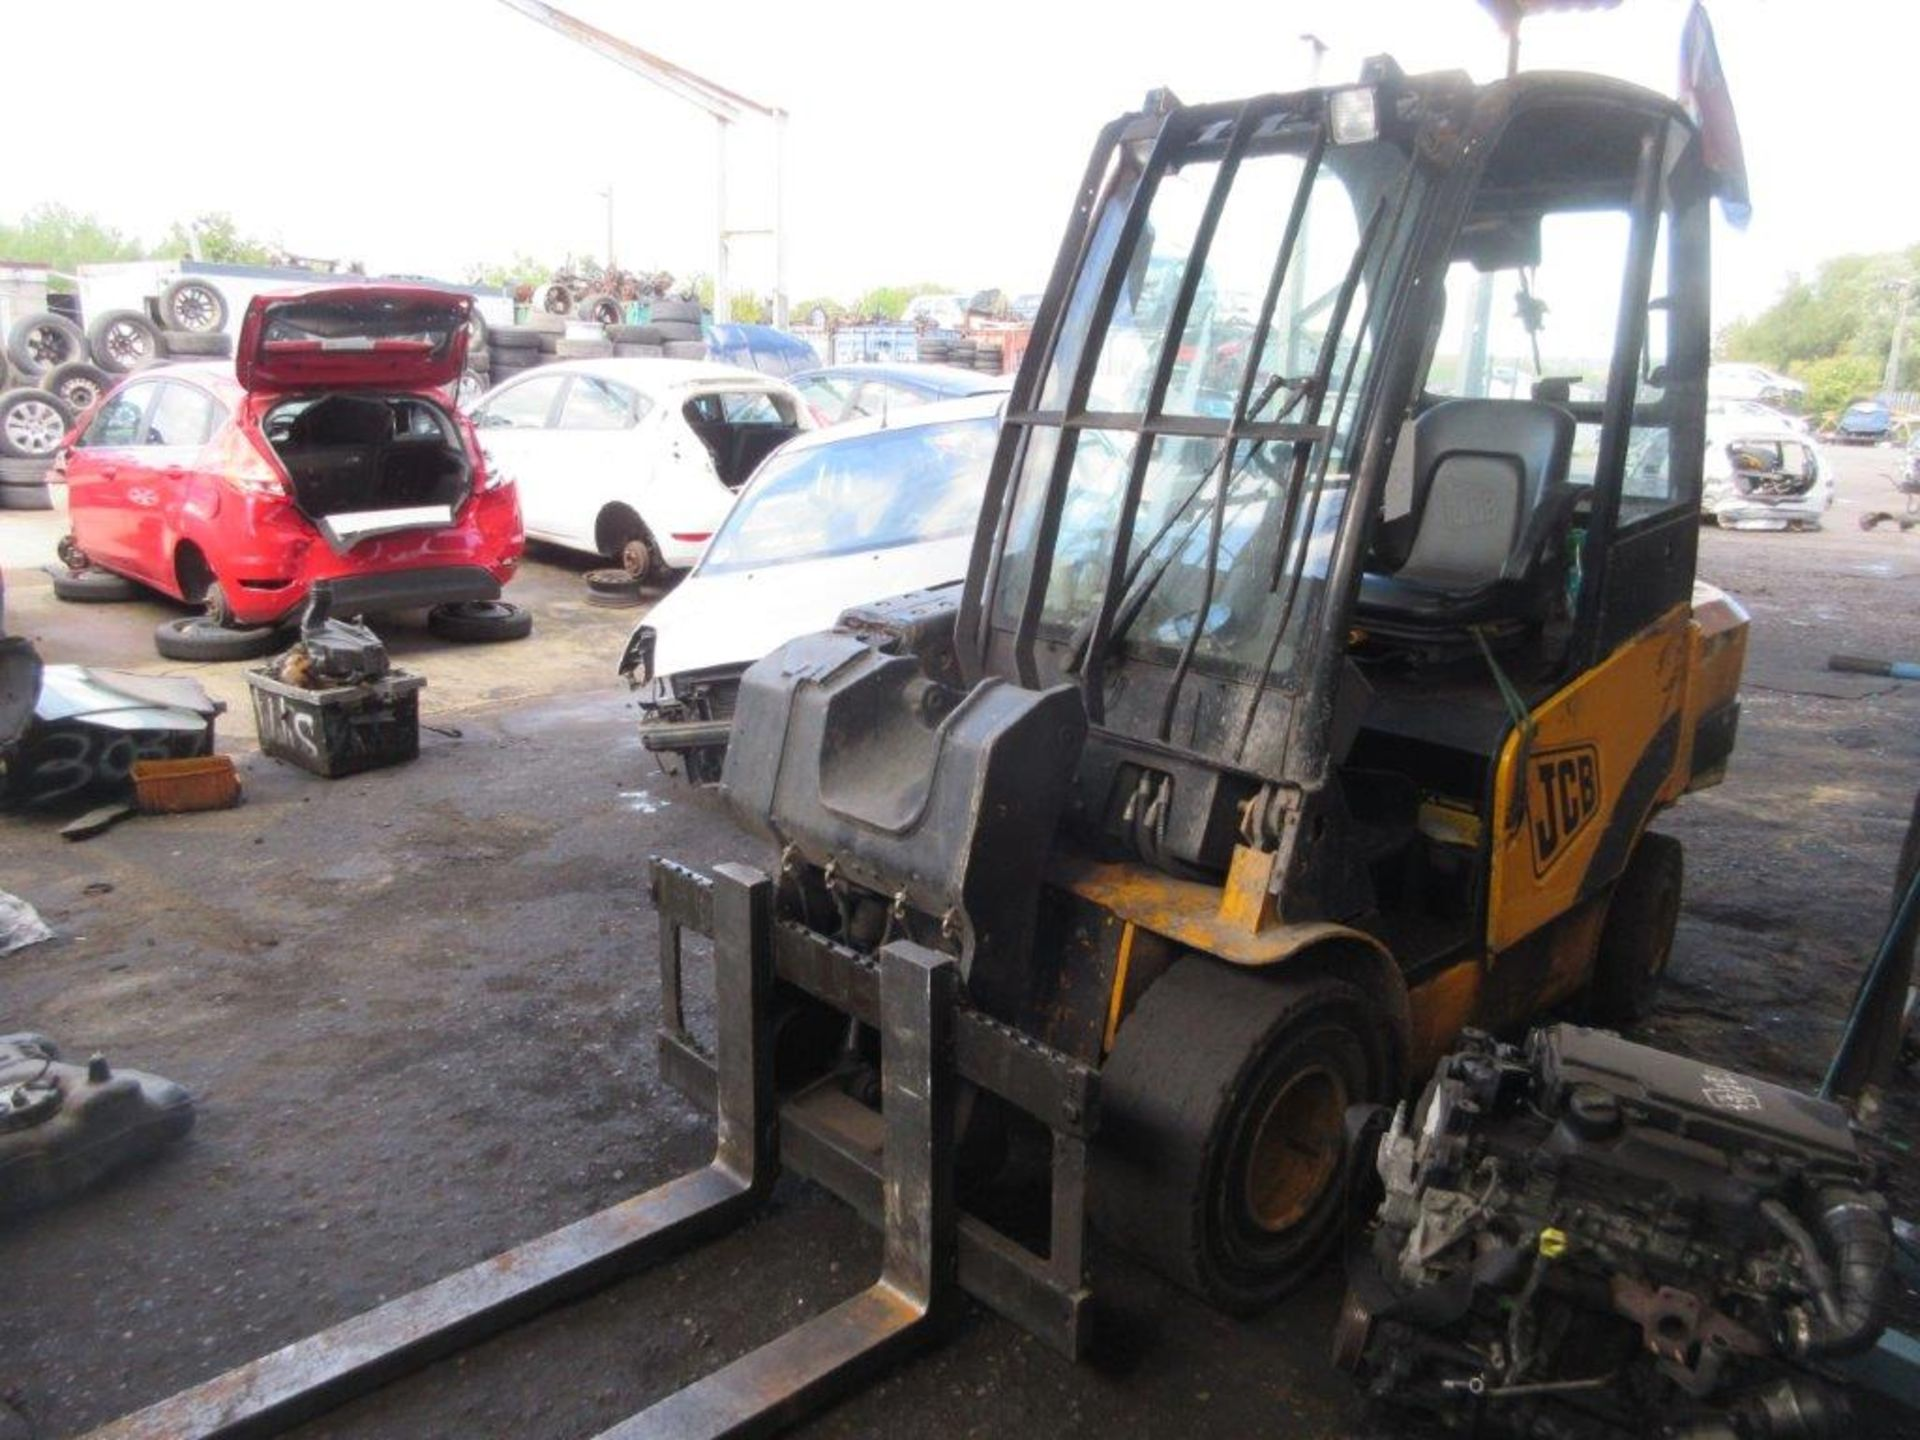 Lot 23 - JCB Teletruk model 88/1269/EEC diesel powered telehandler, Serial no. 982926T (2009), capacity: